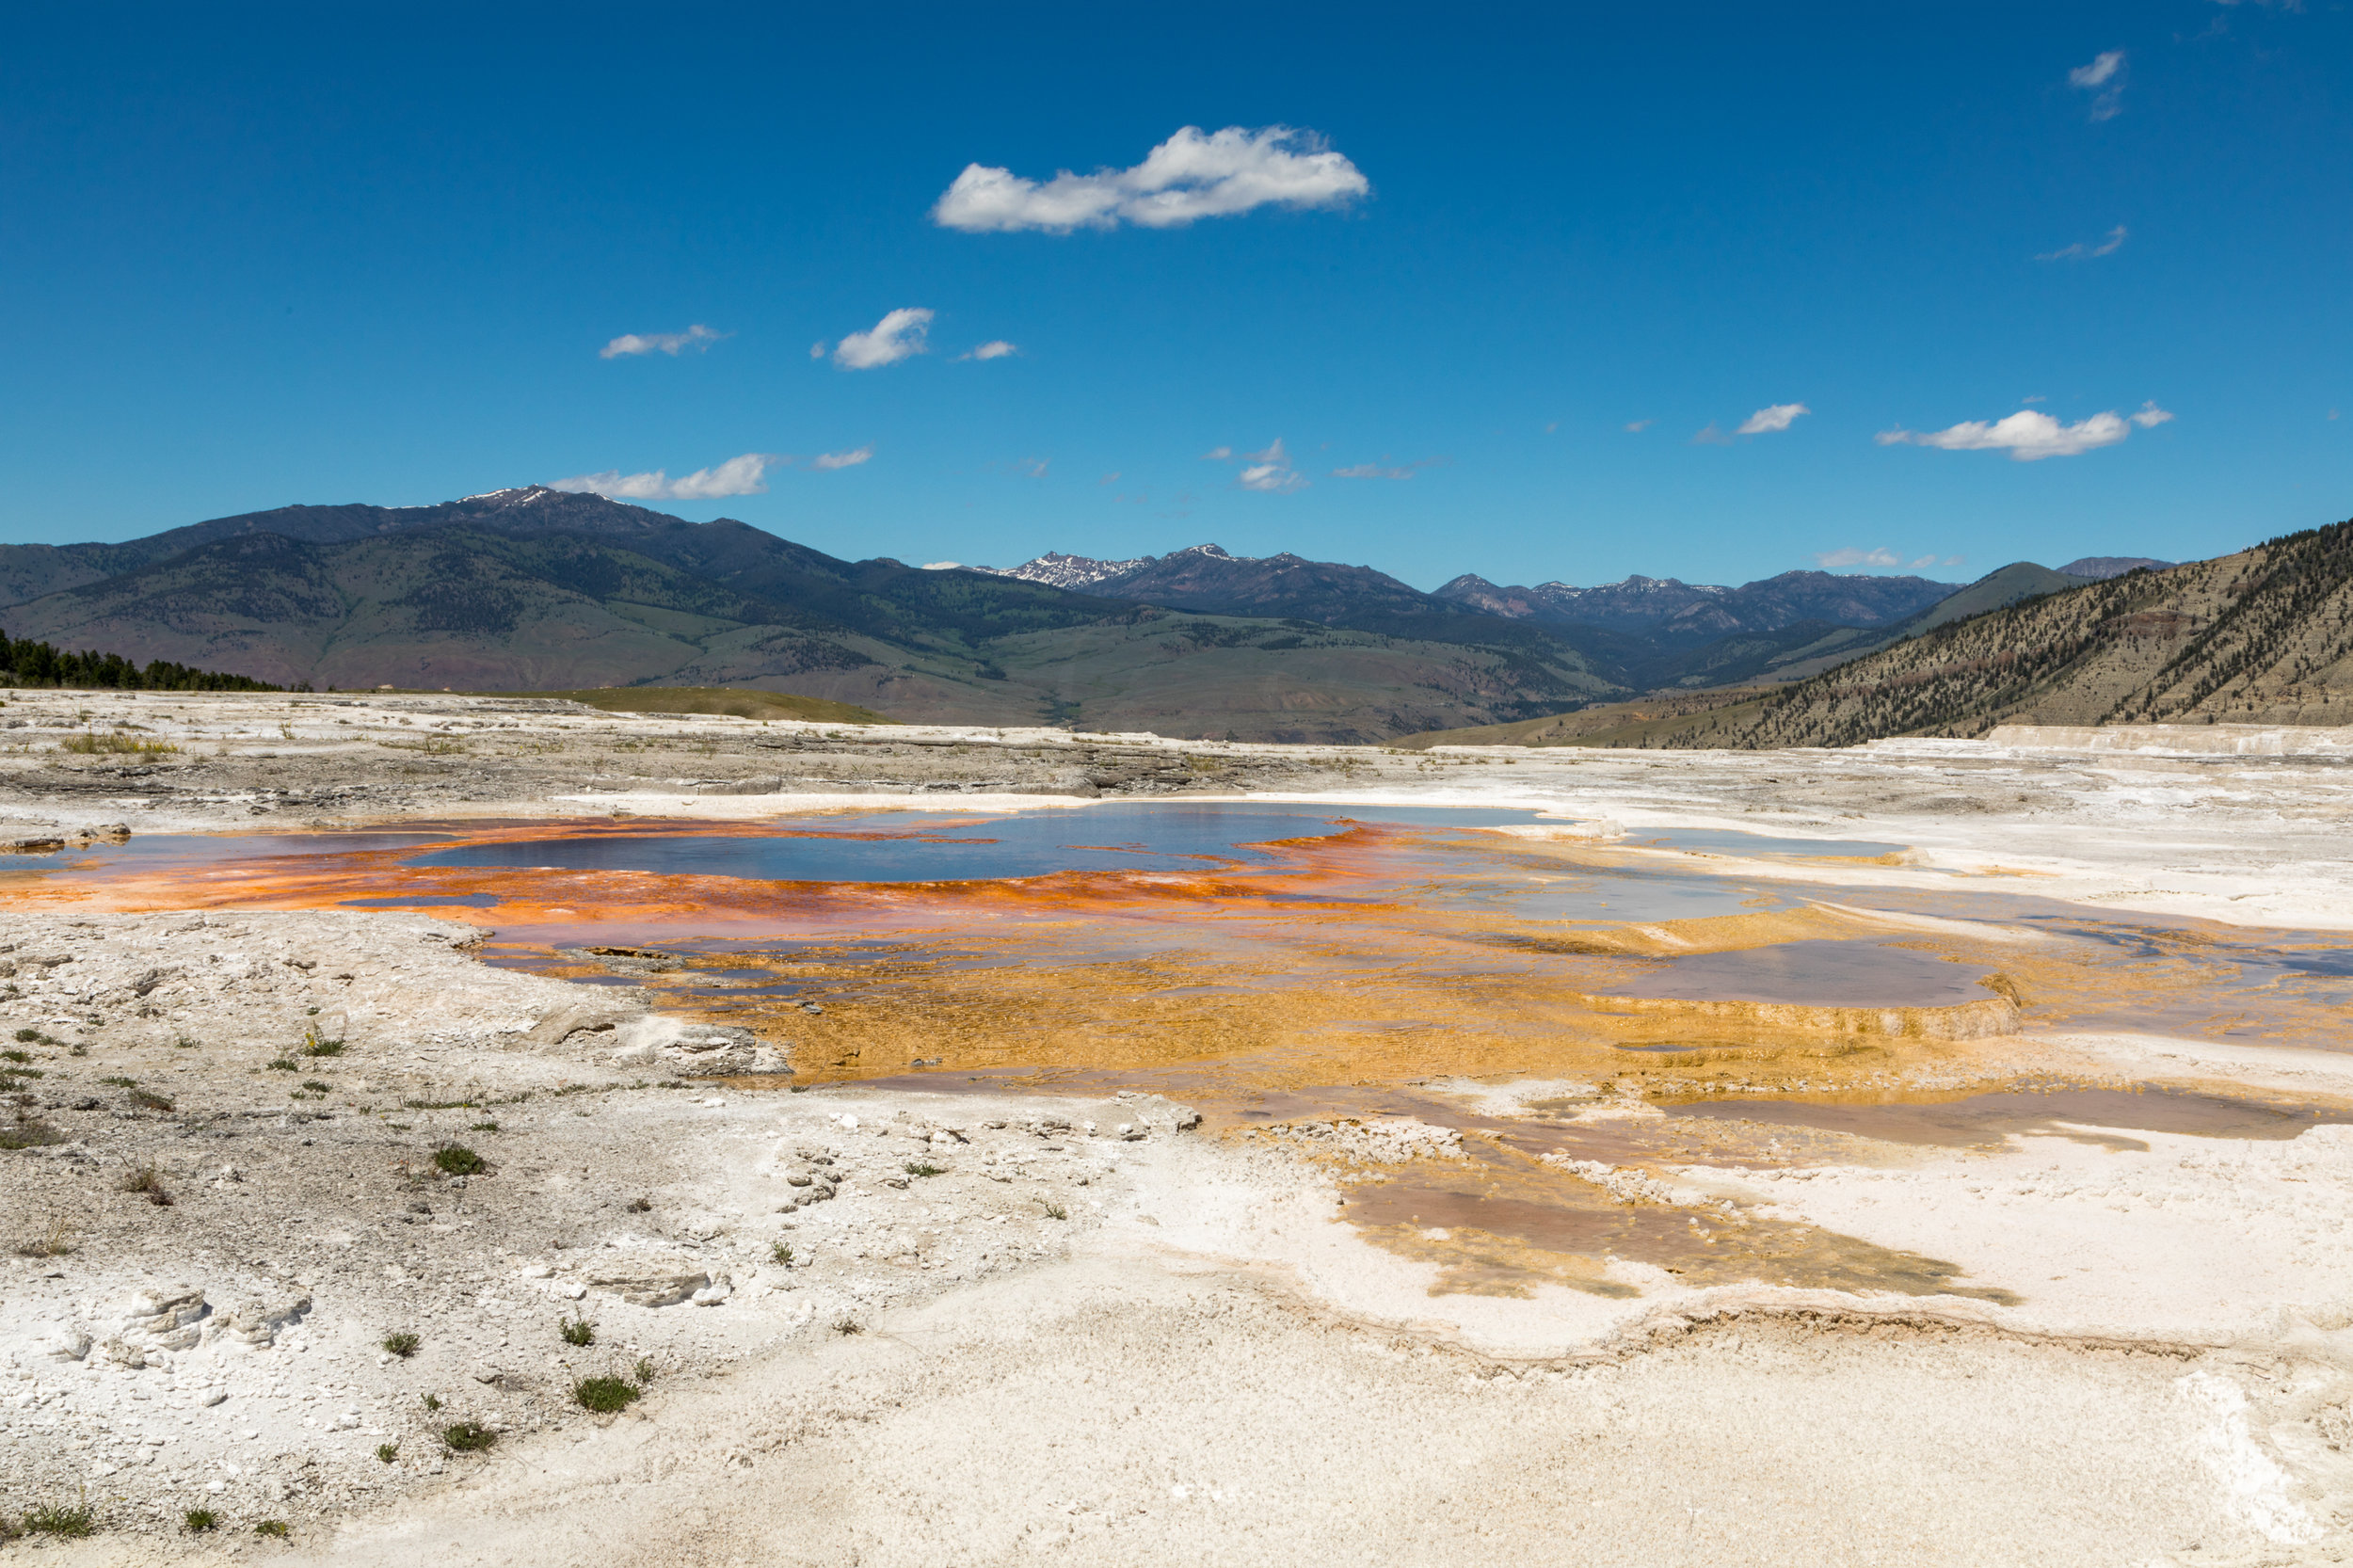 Mammoth Hot Springs, Yellowstone National Park, Image # 7391